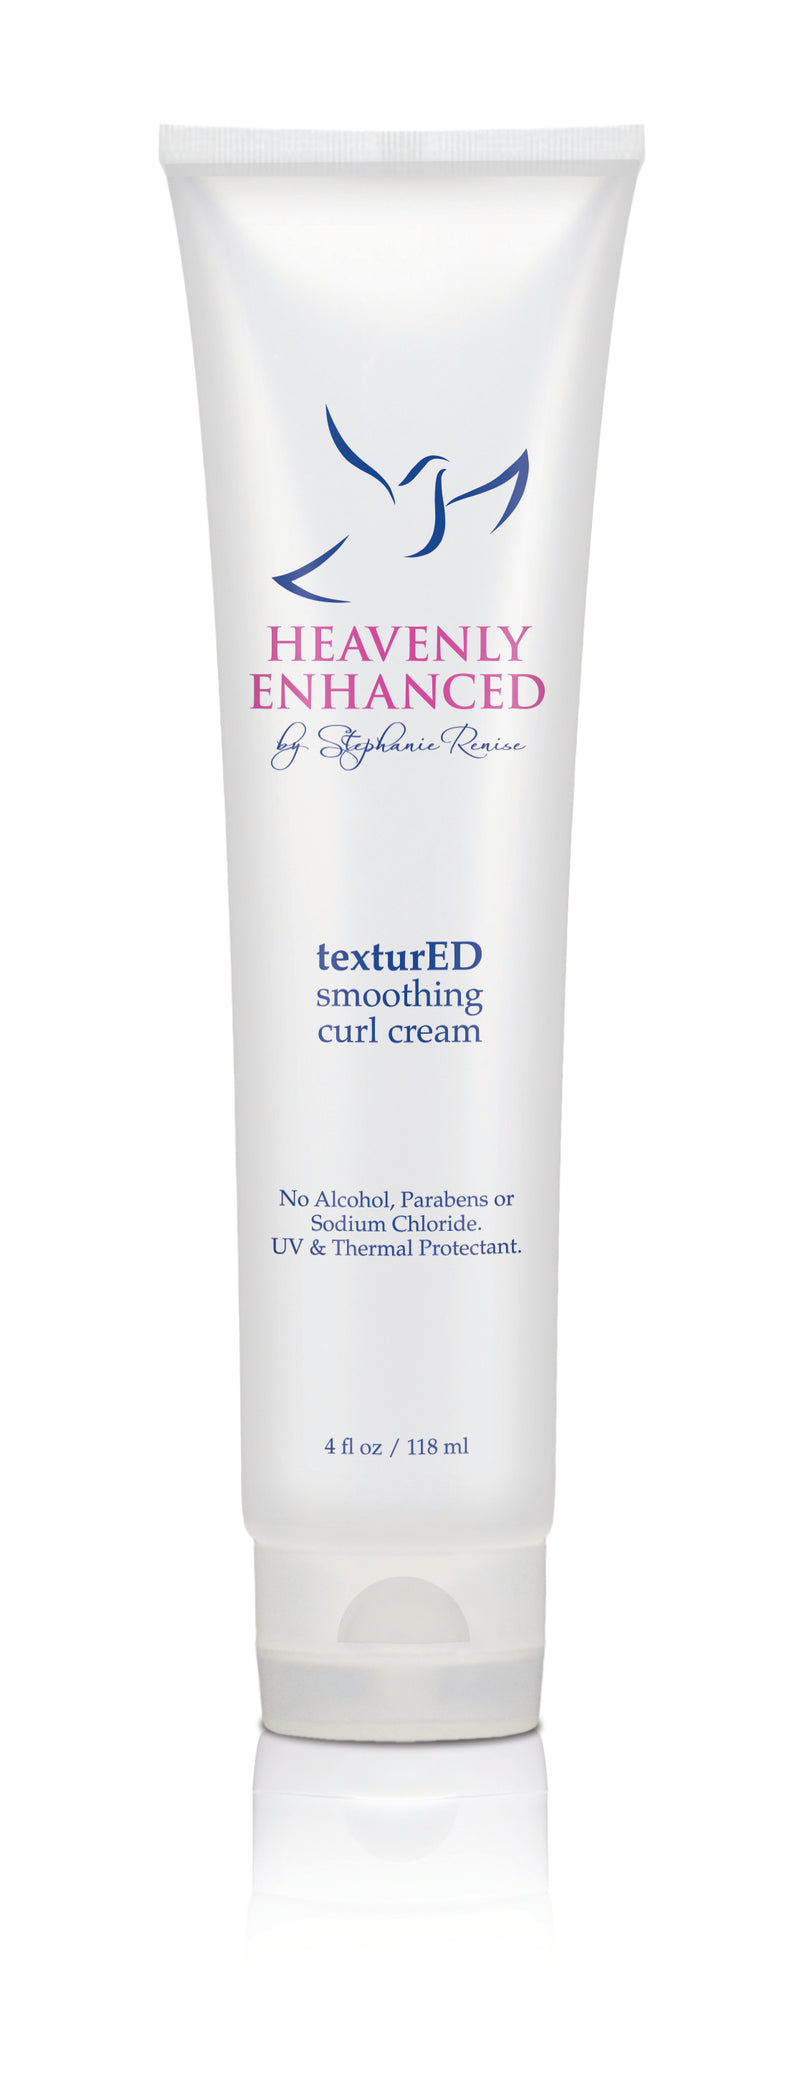 texturED - smoothing curl cream